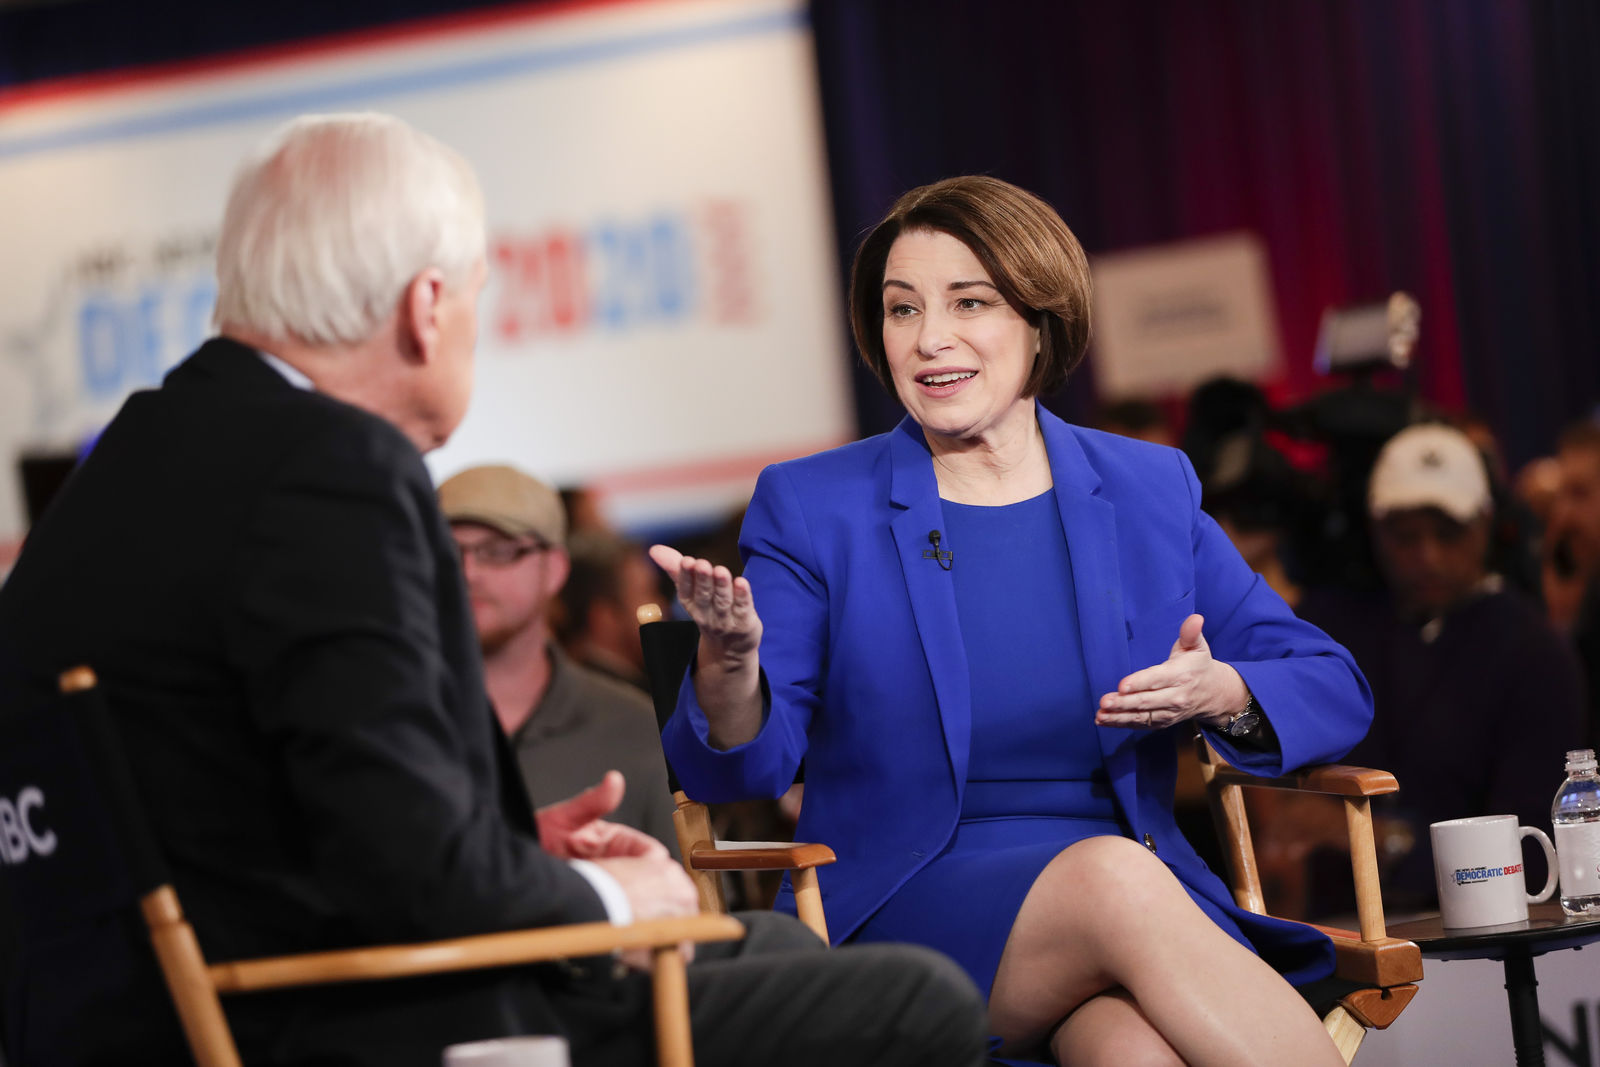 Democratic presidential candidate, Sen. Amy Klobuchar, D-Minn., is interviewed in the spin room after a Democratic presidential primary debate Wednesday, Feb. 19, 2020, in Las Vegas, hosted by NBC News and MSNBC. (AP Photo/Matt York)